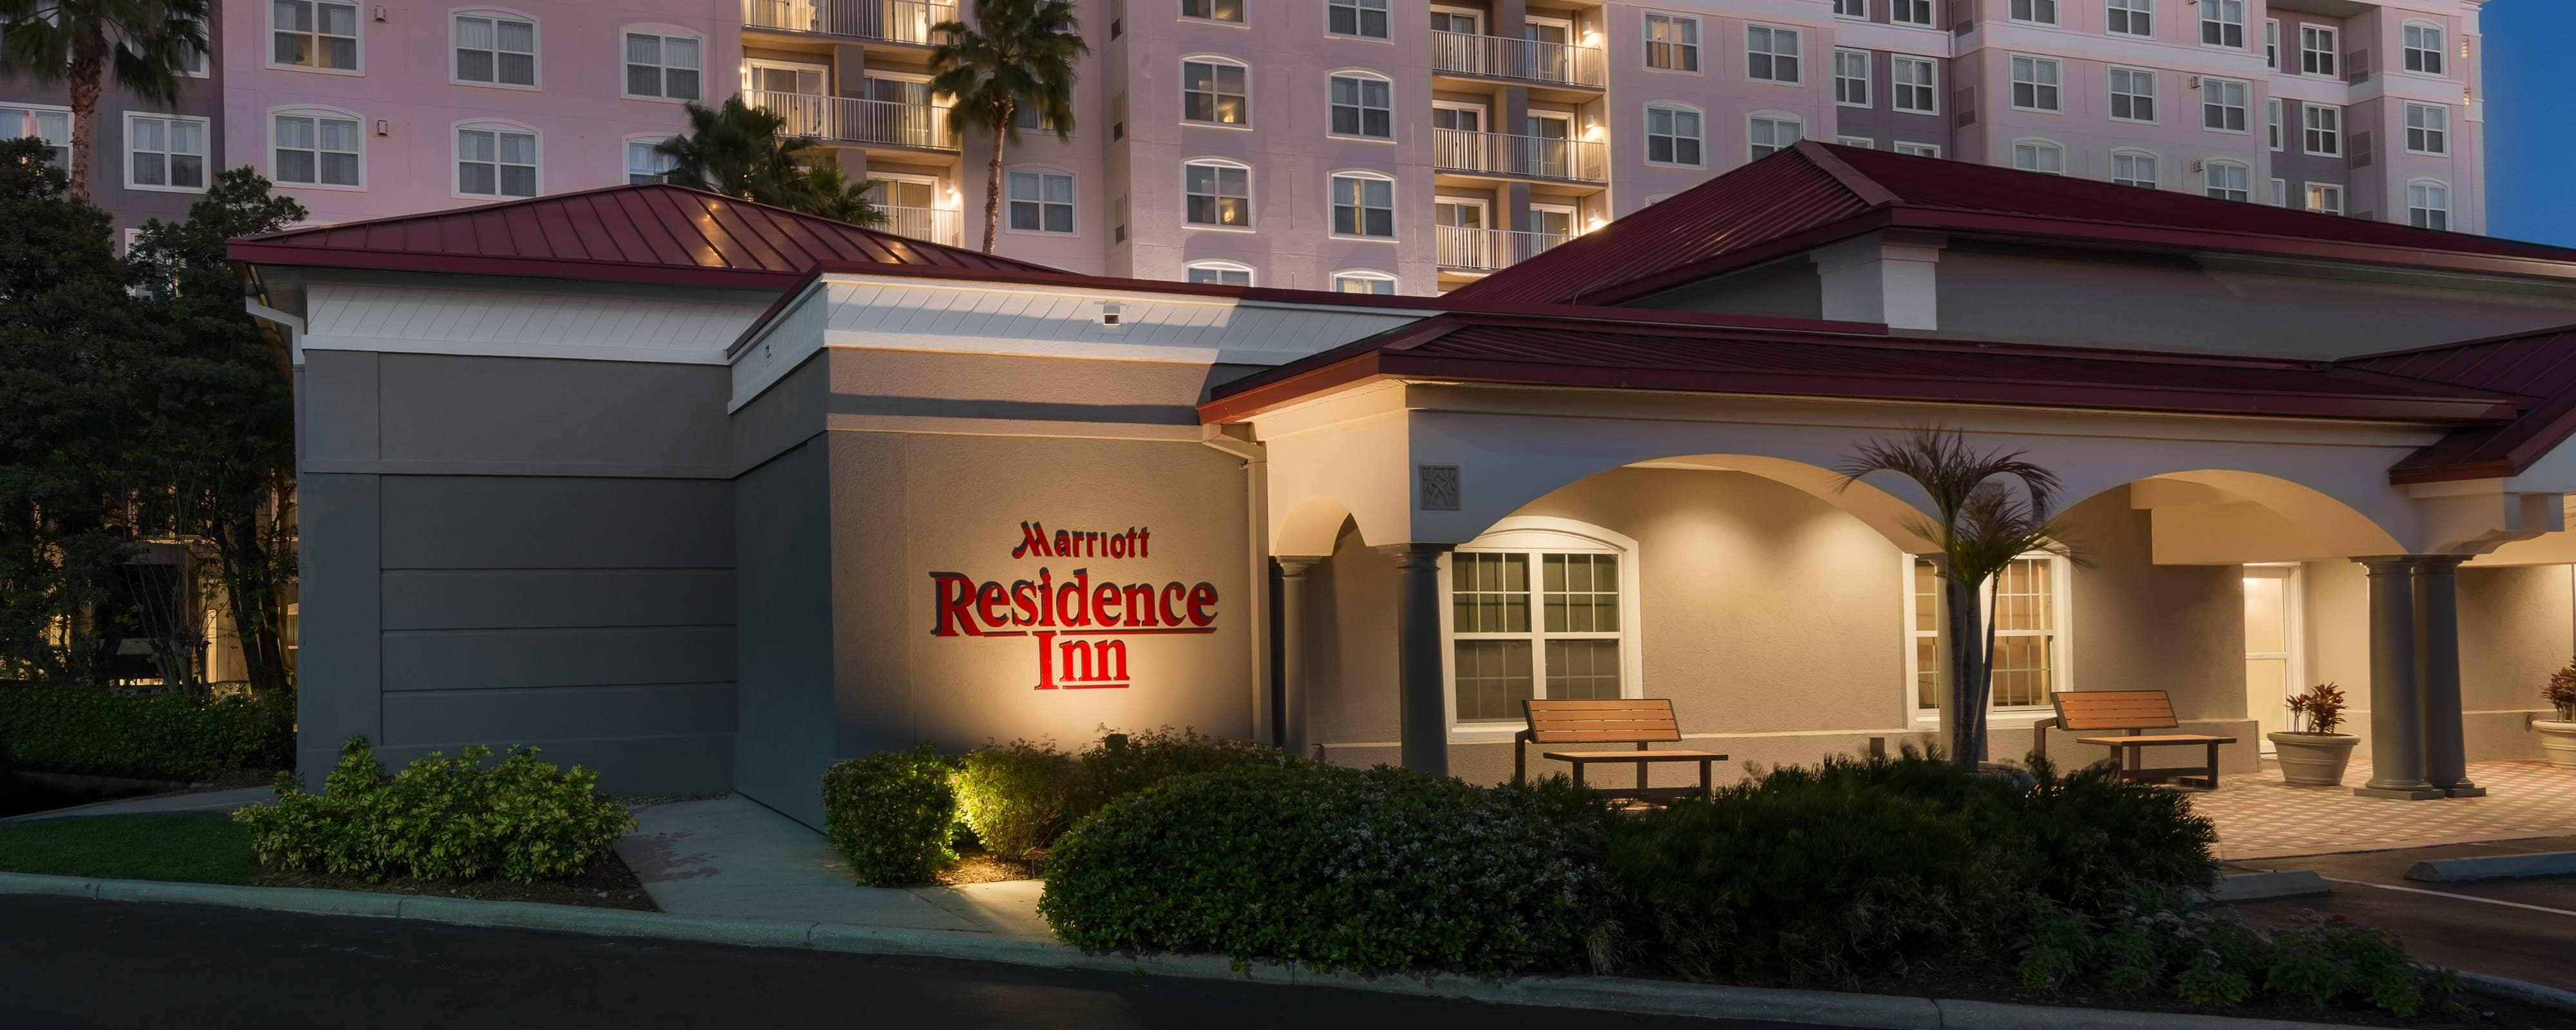 Directions to Marriott Tampa | Residence Inn Tampa Wests/Airport on map of hotels in south beach miami, map of san juan pr hotels, map of harrisburg pa hotels, map of hotels in charleston sc, map of providence ri hotels, map of schaumburg il hotels, map of minneapolis mn hotels, map of state college pa hotels, map of seaside heights nj hotels, map of roanoke va hotels, map of cannes france hotels, map of hotels in salt lake city, map of topeka ks hotels, map of san diego ca hotels, map of myrtle beach sc hotels, map of rapid city sd hotels, map of orlando attractions and hotels, map of niagara falls hotels canada, map of hotels in lake tahoe, map of portland map,